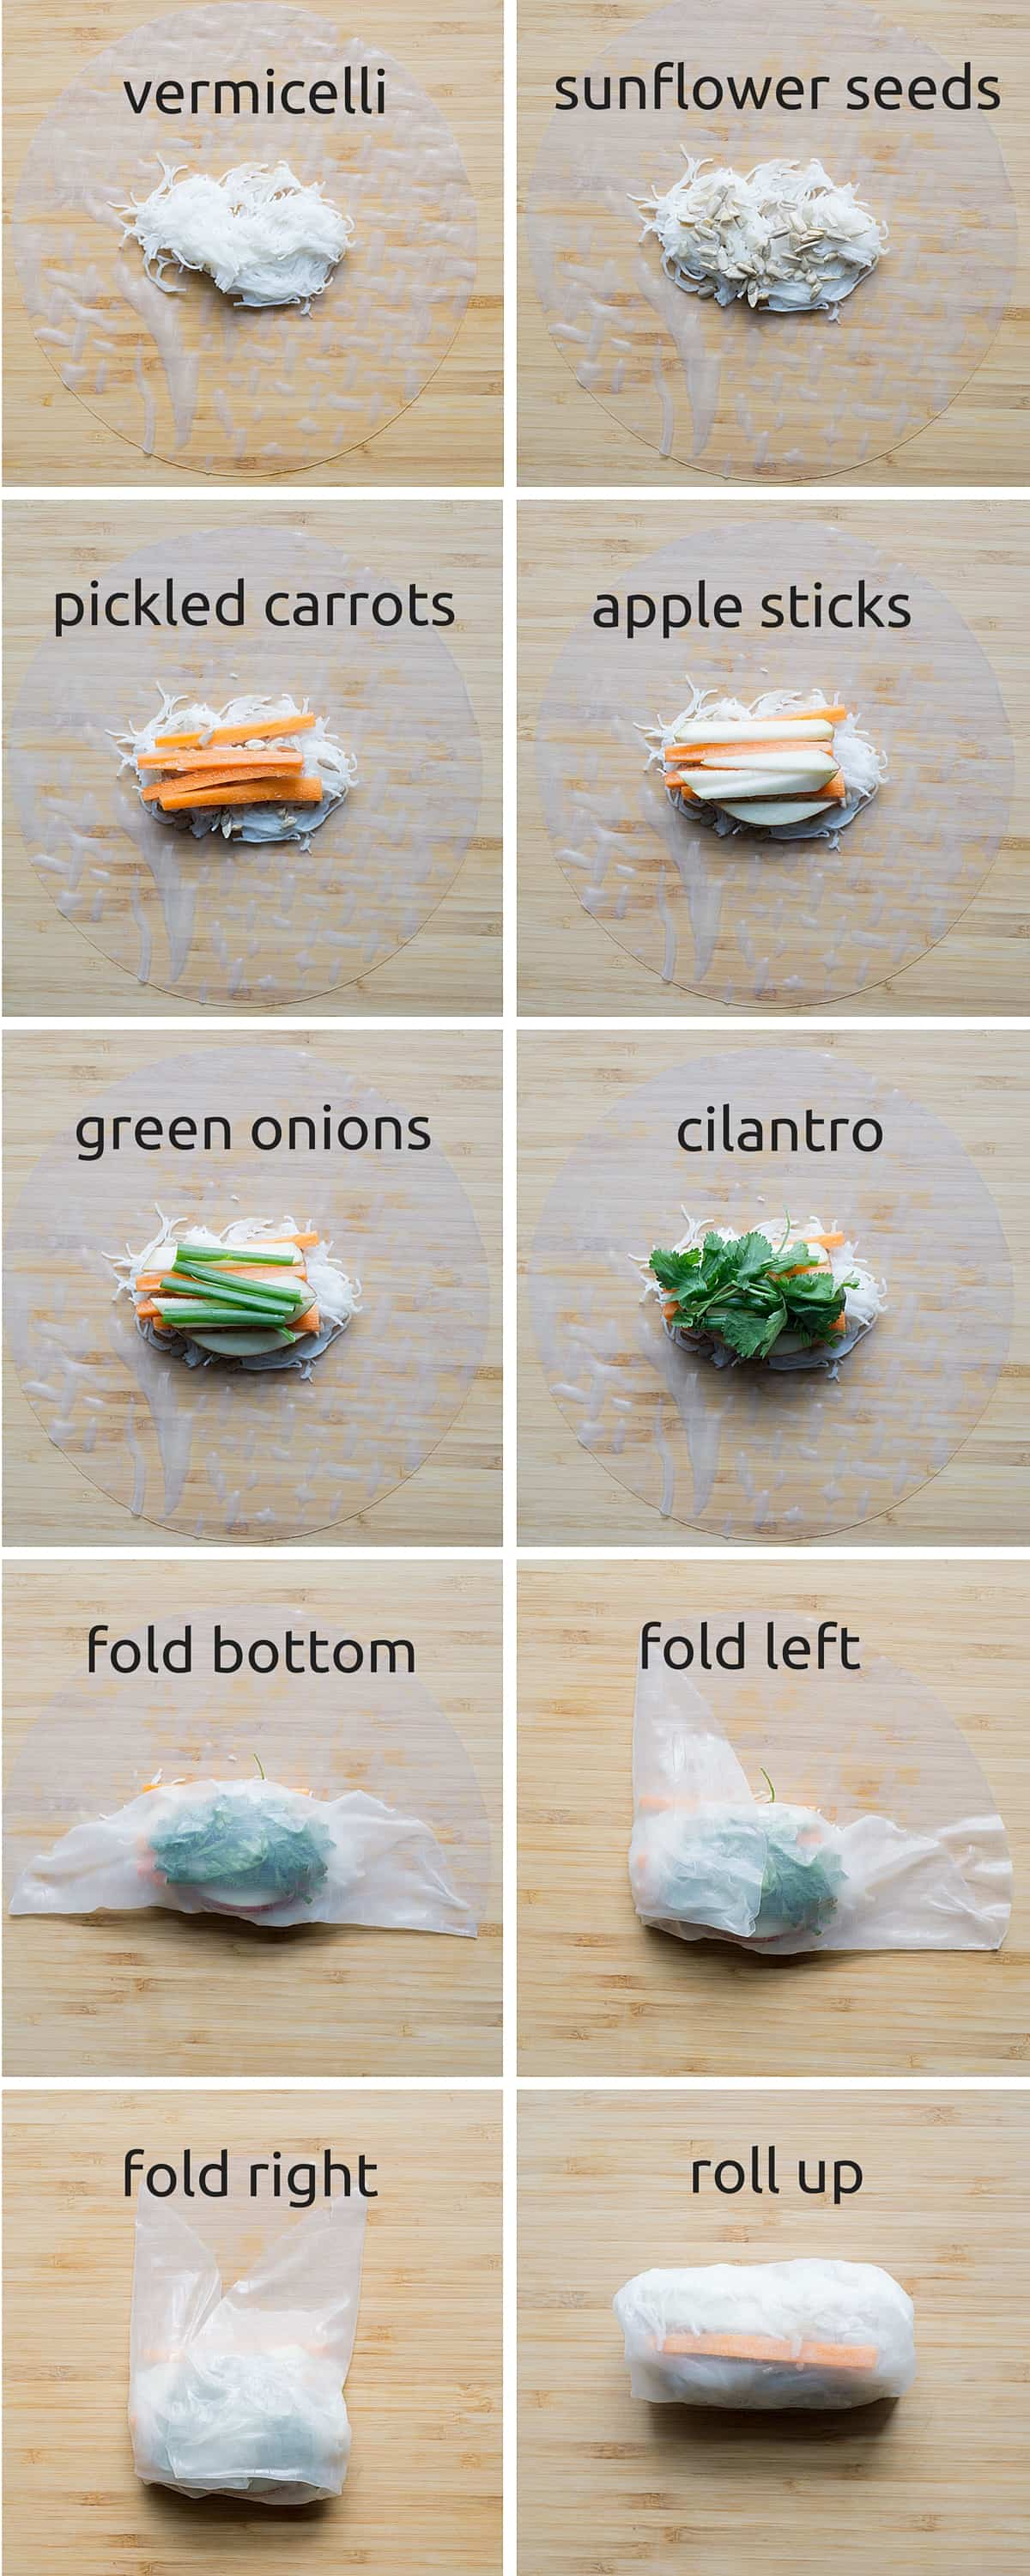 How to make a salad/summer roll